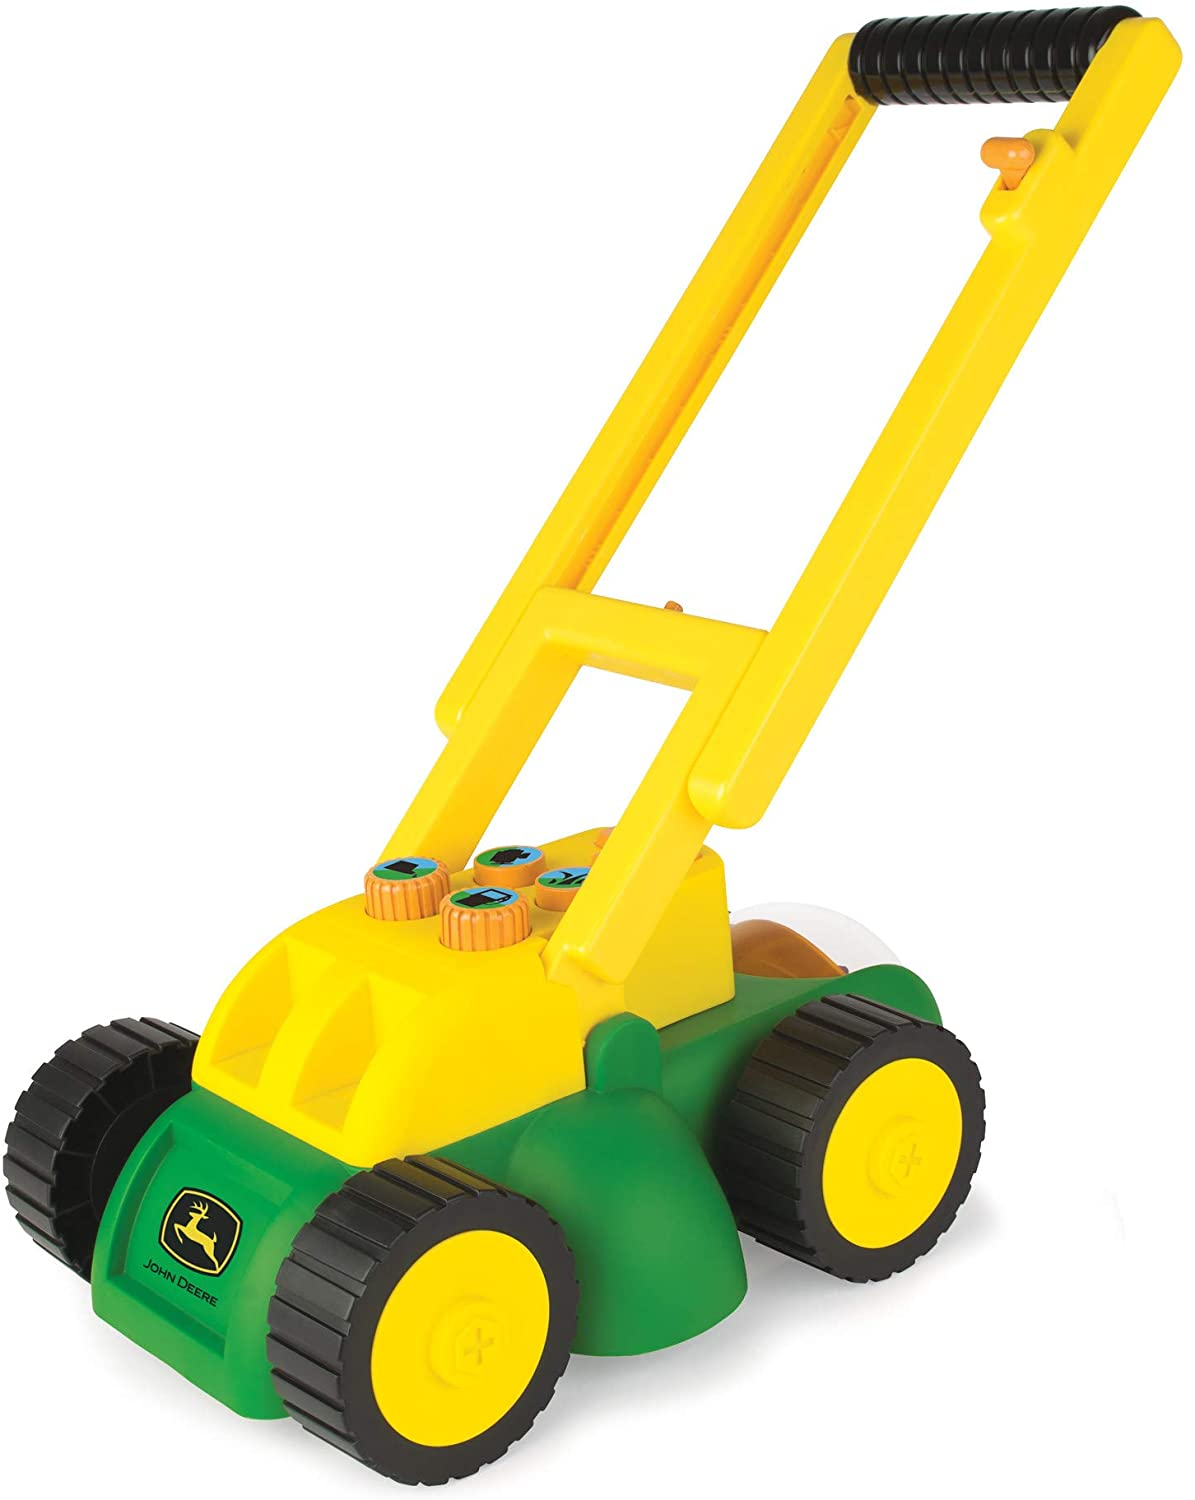 9 Best Bubble Lawn Mower for Kids & Toddlers Reviews of 2021 18